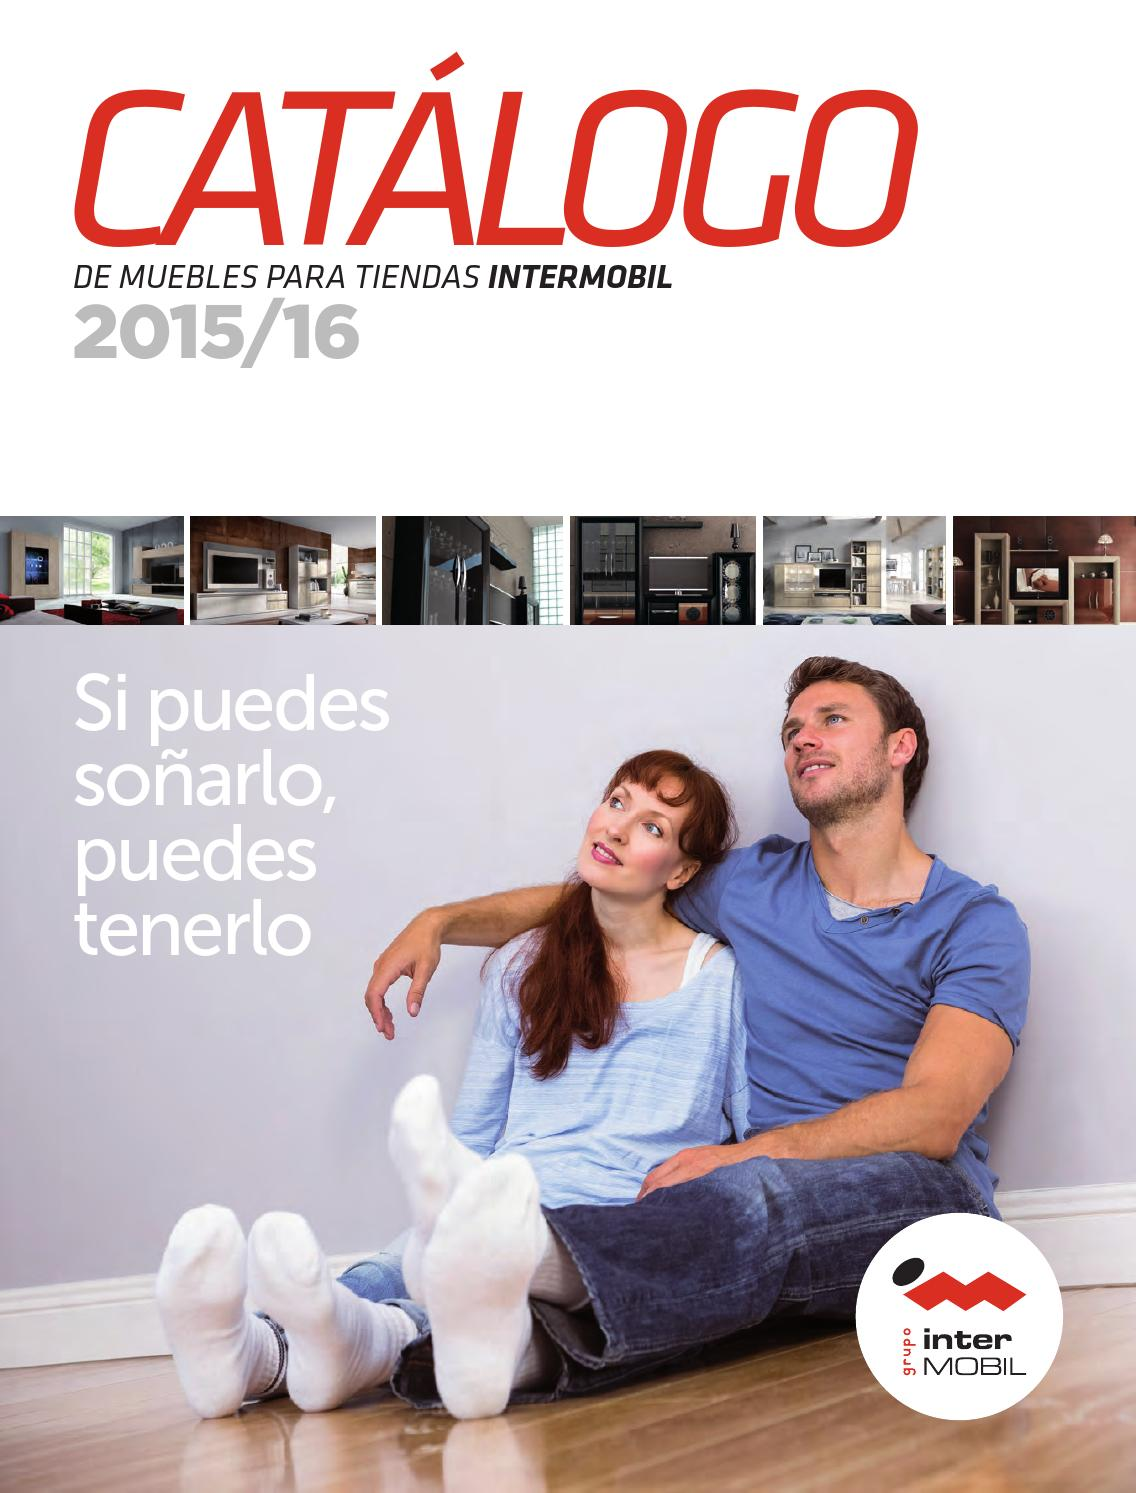 Cat Logo Muebles Nebra Intermobil 2015 16 By Muebles Nebra  # Muebles Rodero Salamanca